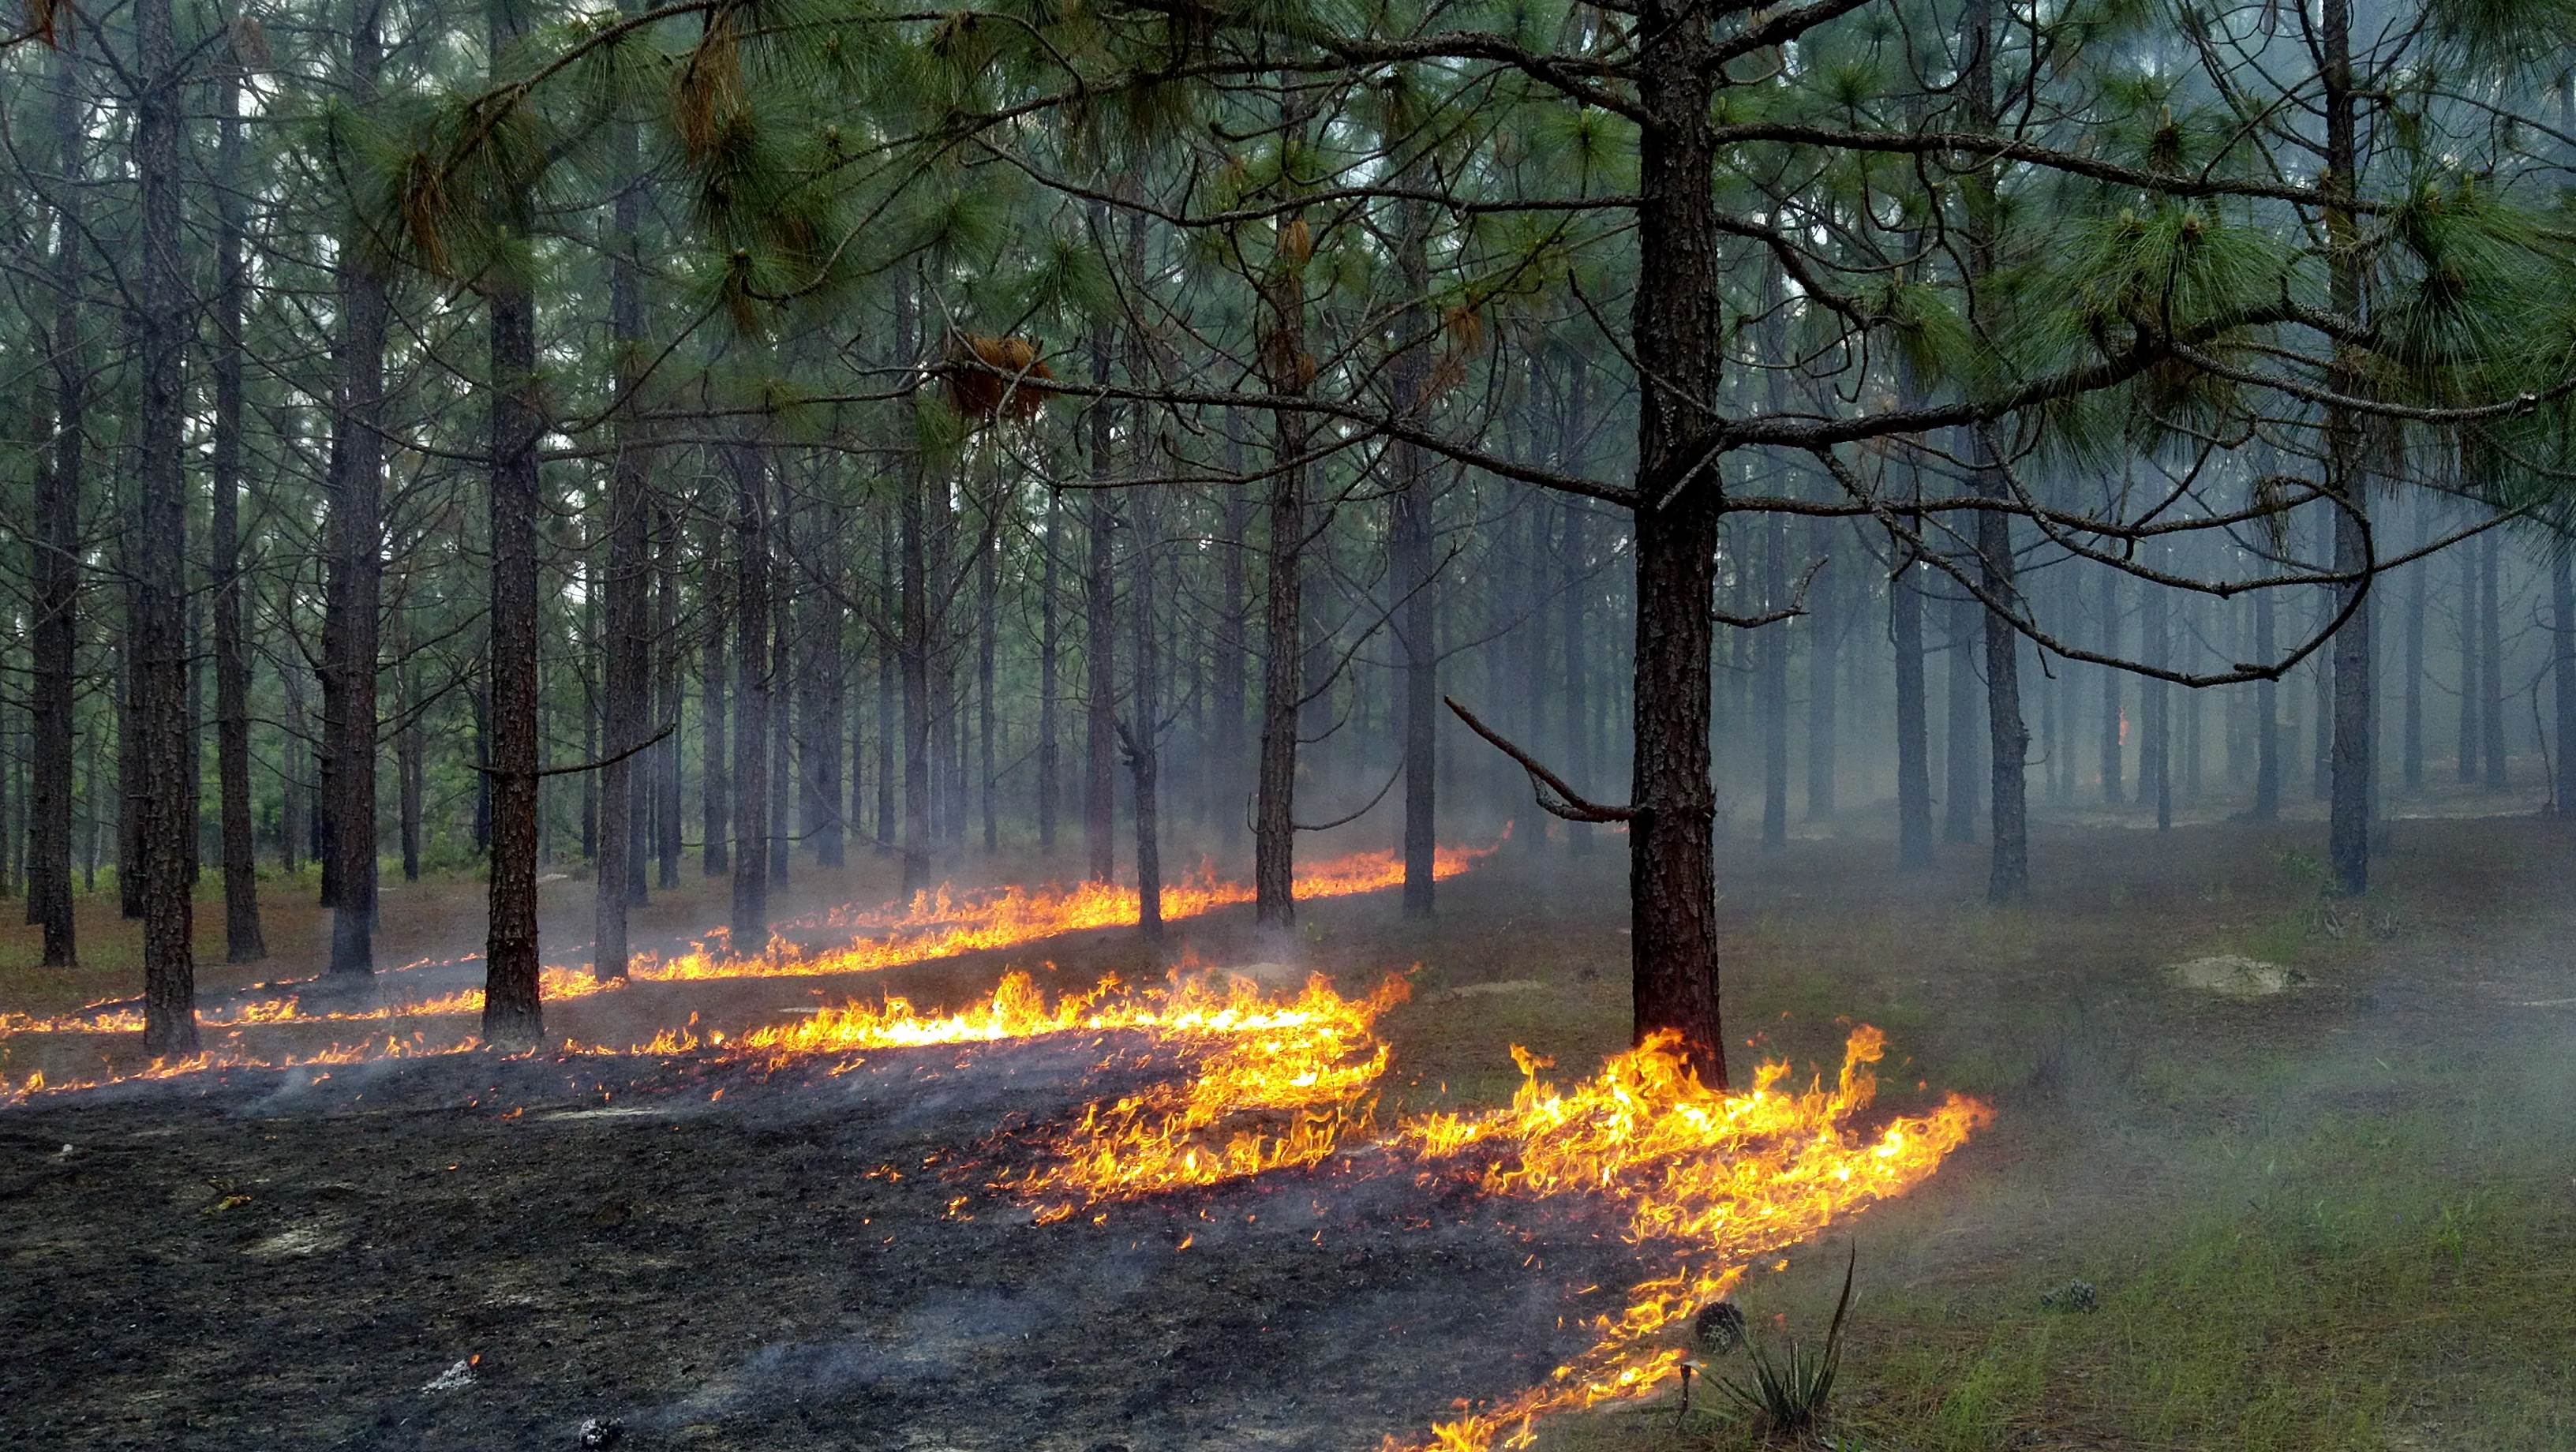 Prescribed burning helps longleaf pine forests thrive by reducing competition for longleaf pine tree